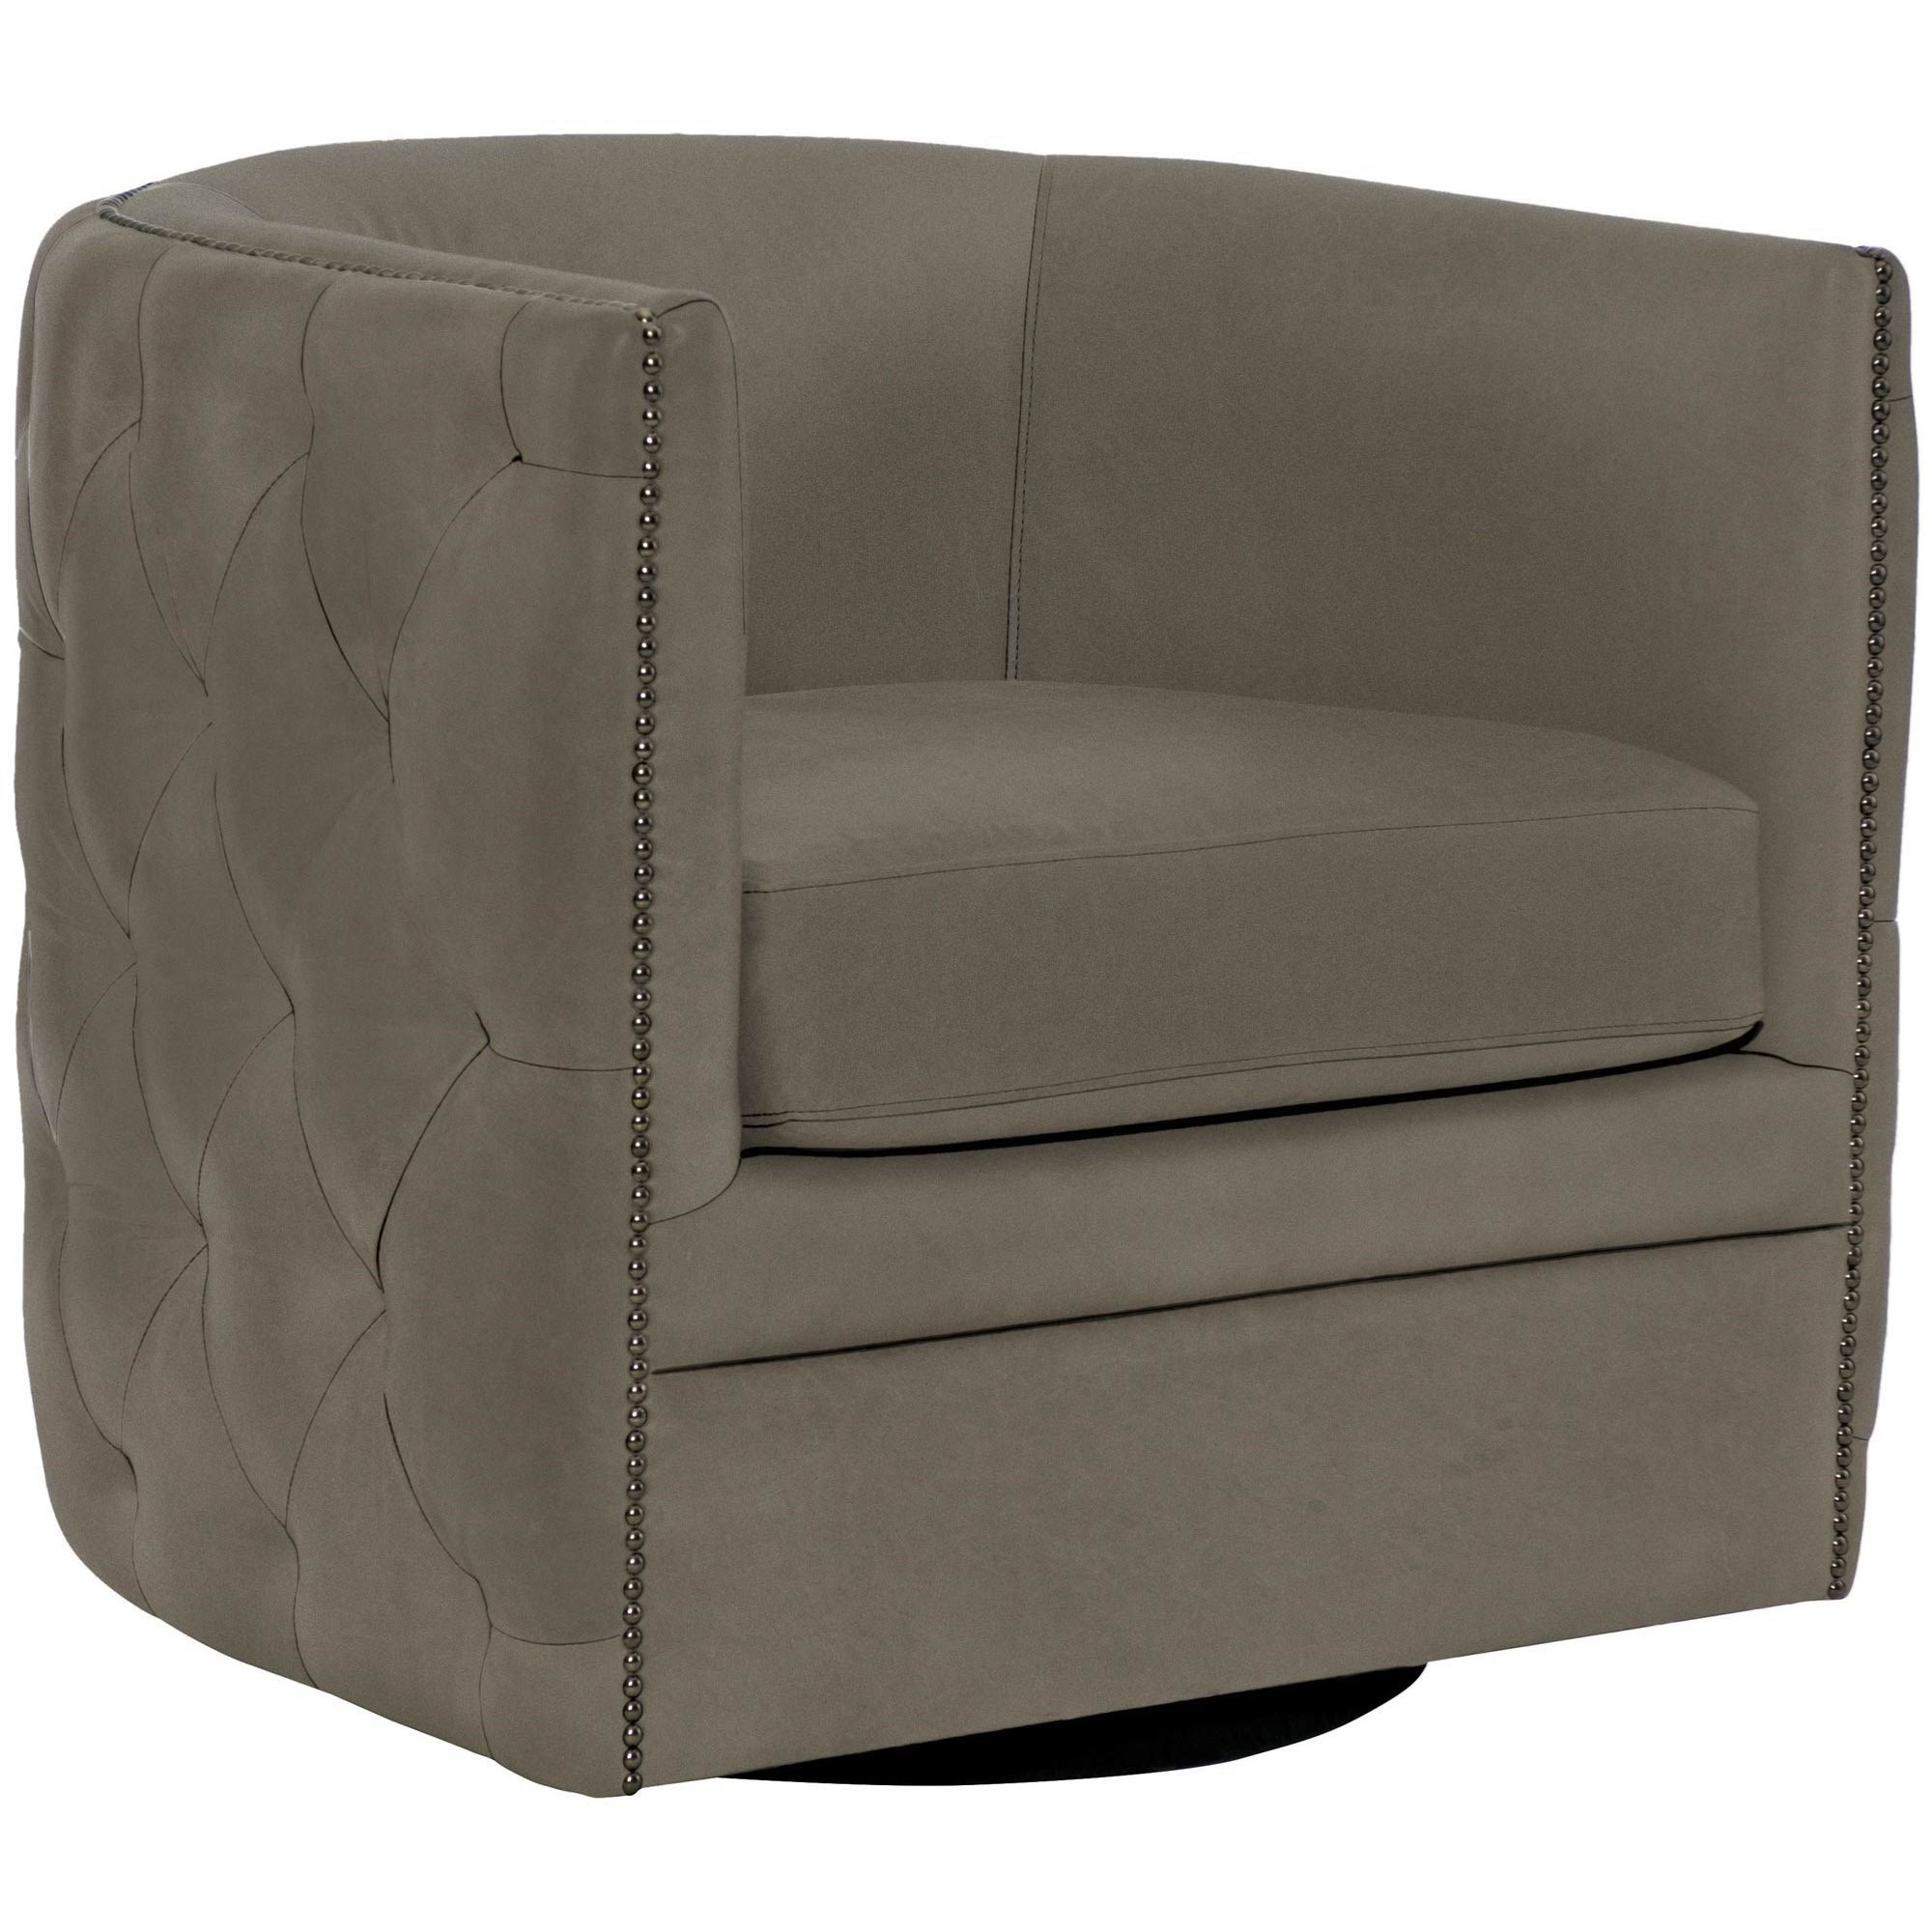 Upholstered Accents Palazzo Swivel Chair by Bernhardt at Baer's Furniture